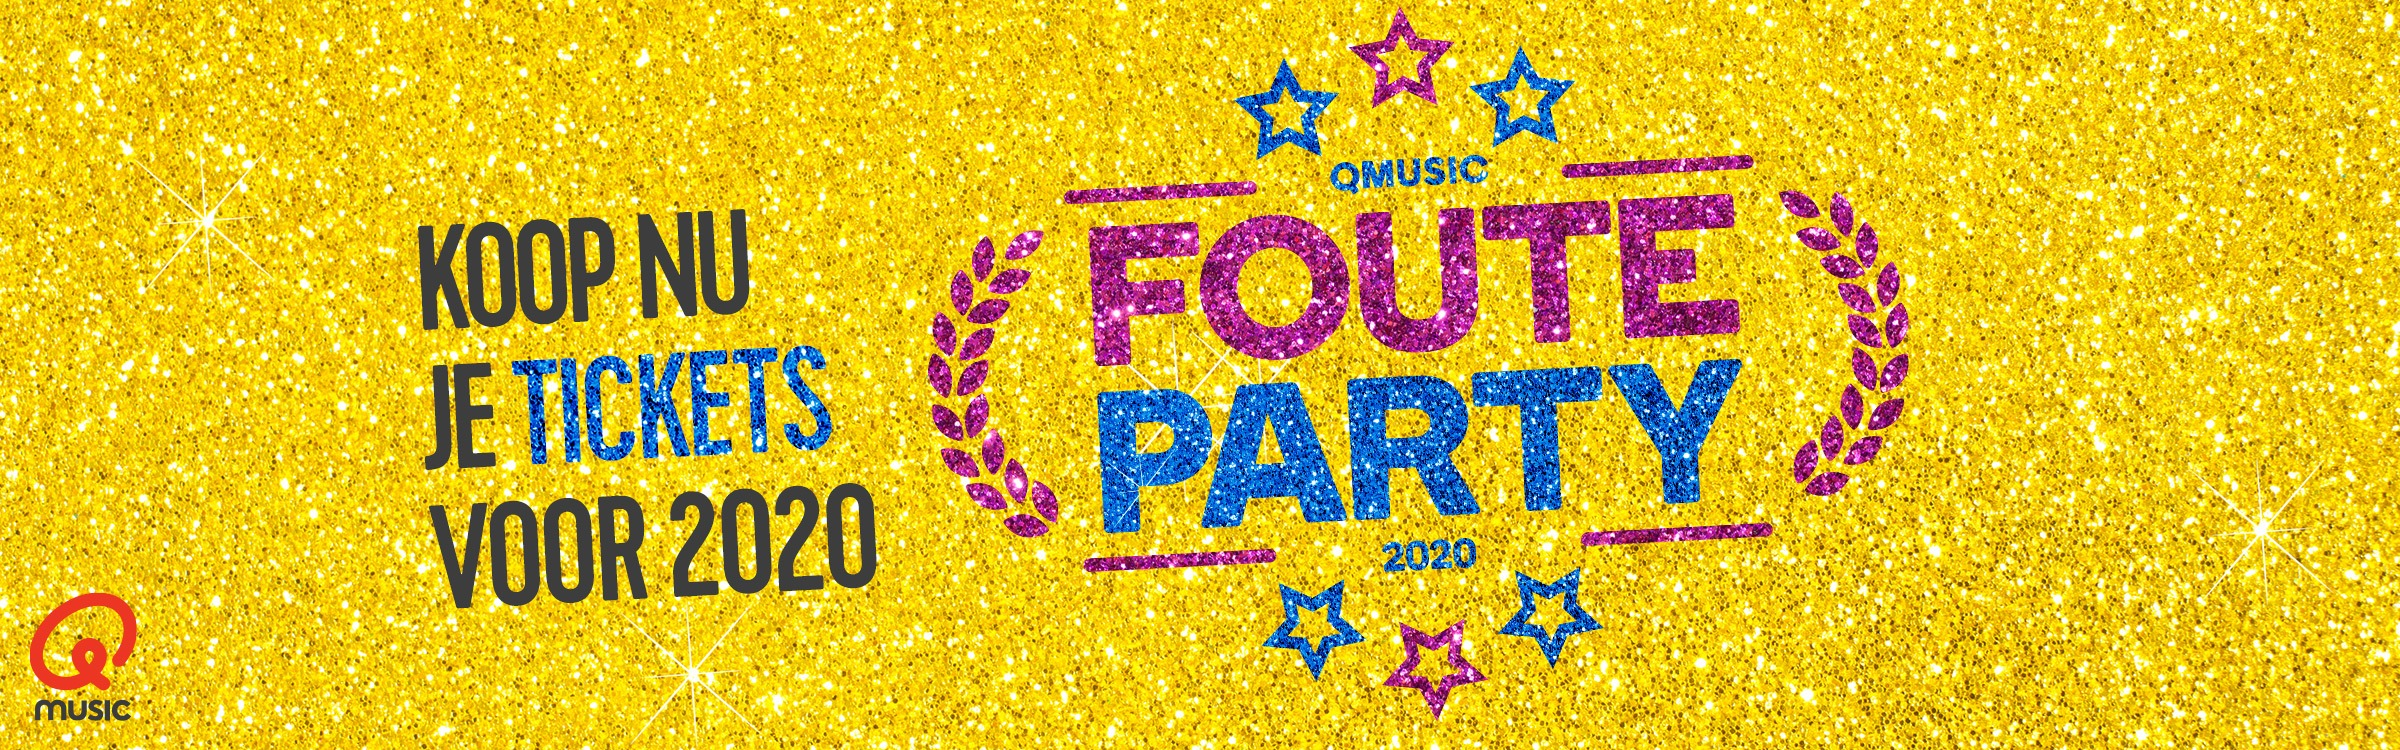 Qmusic actionheader fouteparty2020 tickets